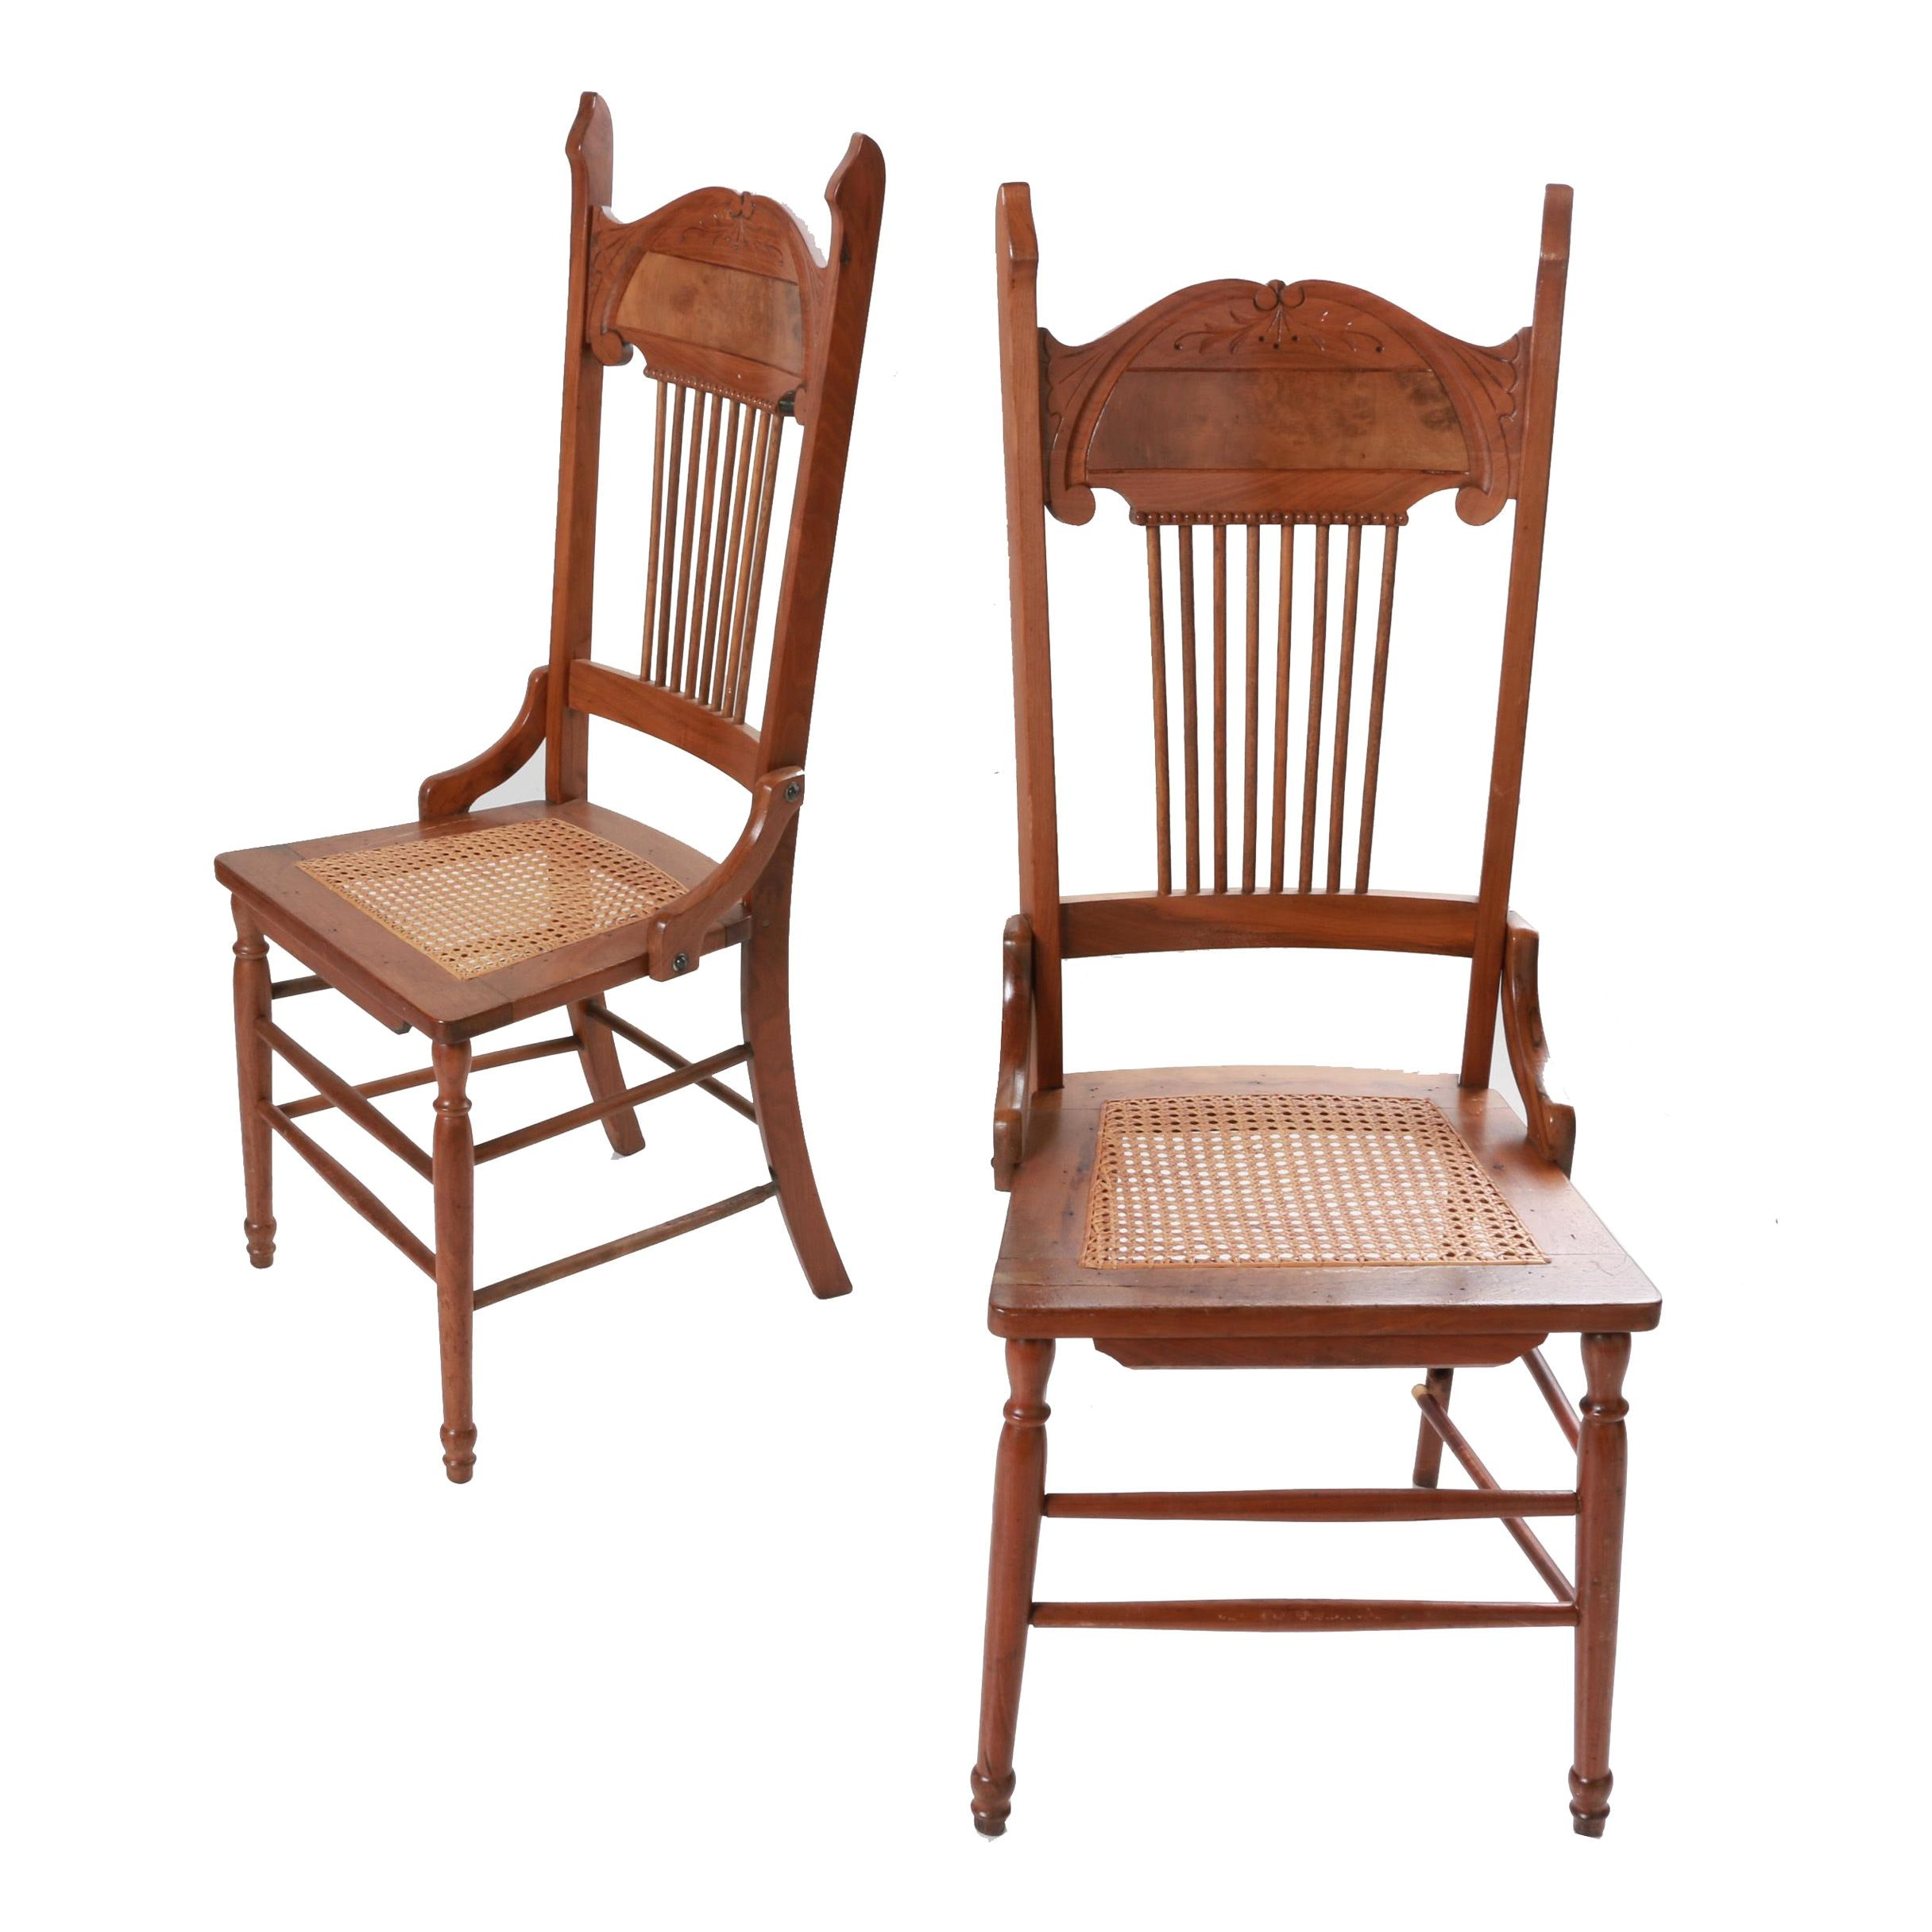 Caned Seat Chairs